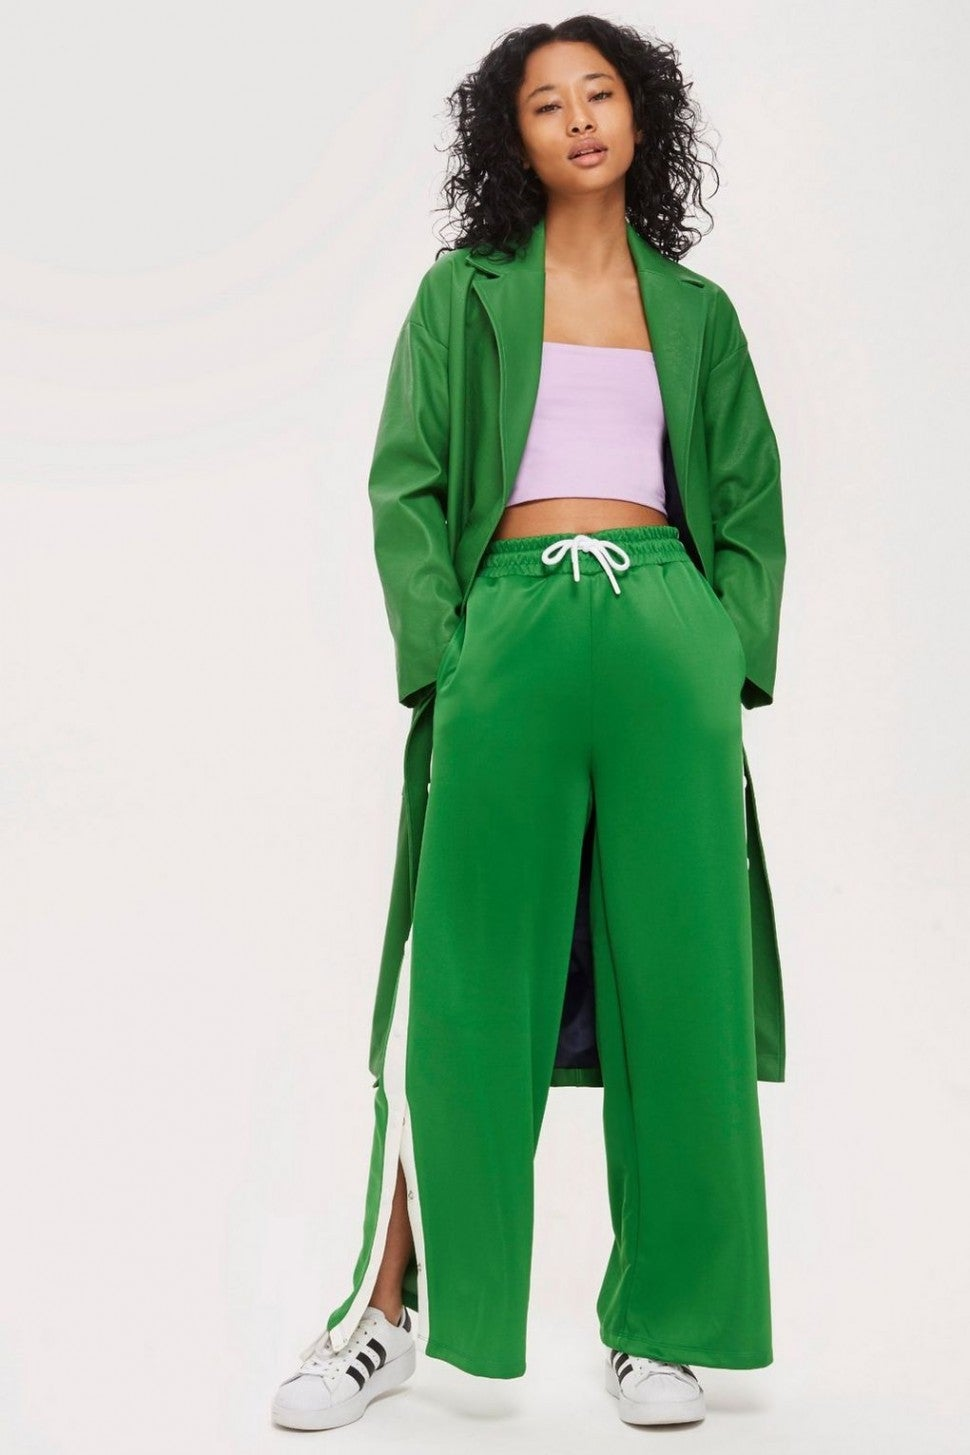 Topshop wide leg green satin track pant